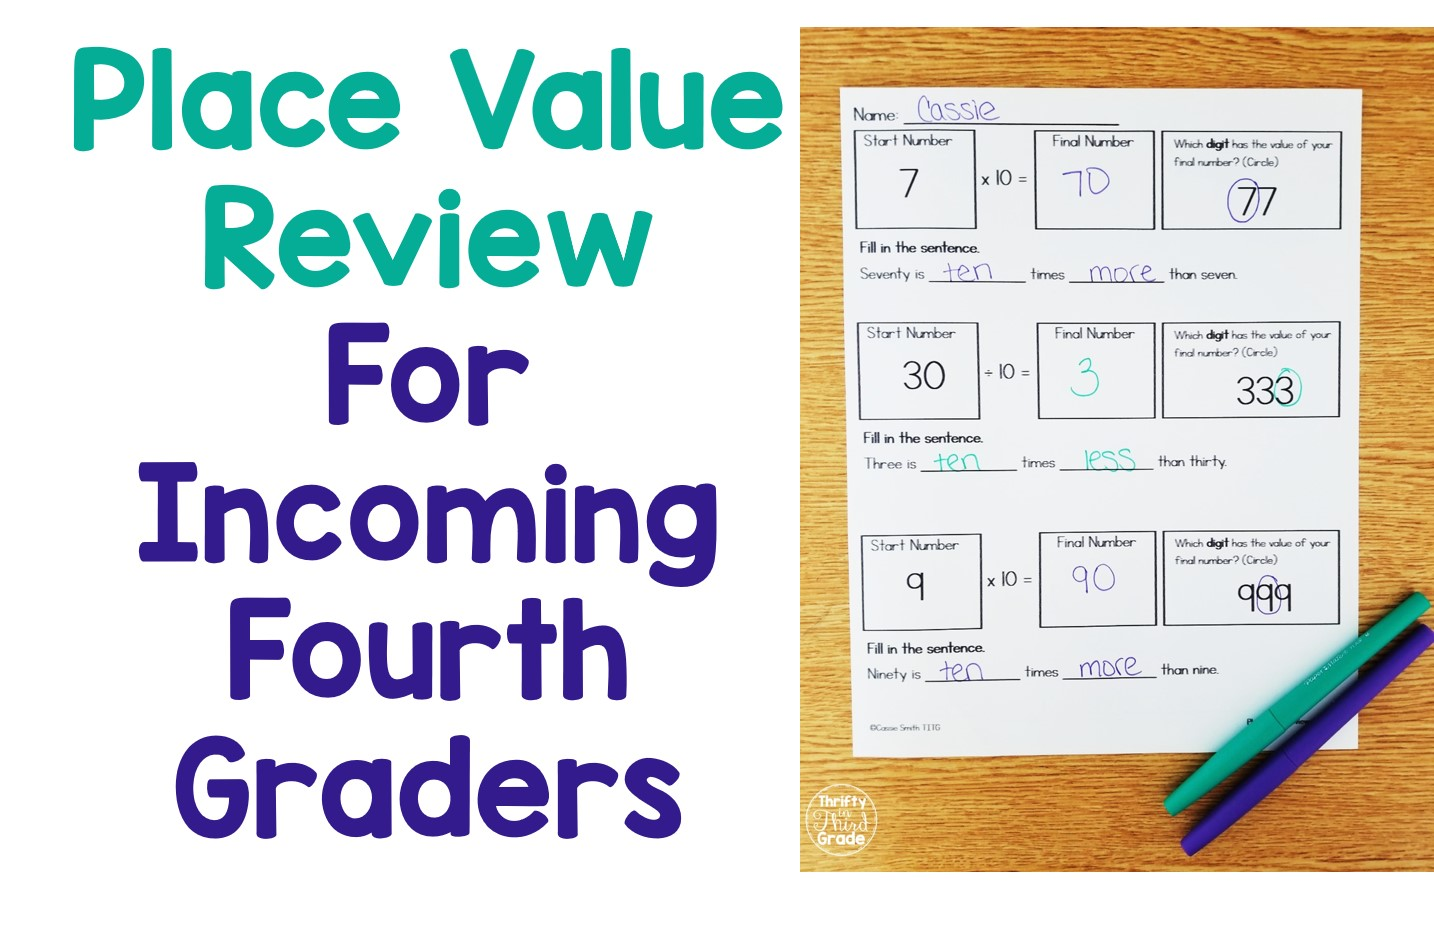 Place Value Review For Incoming Fourth Graders